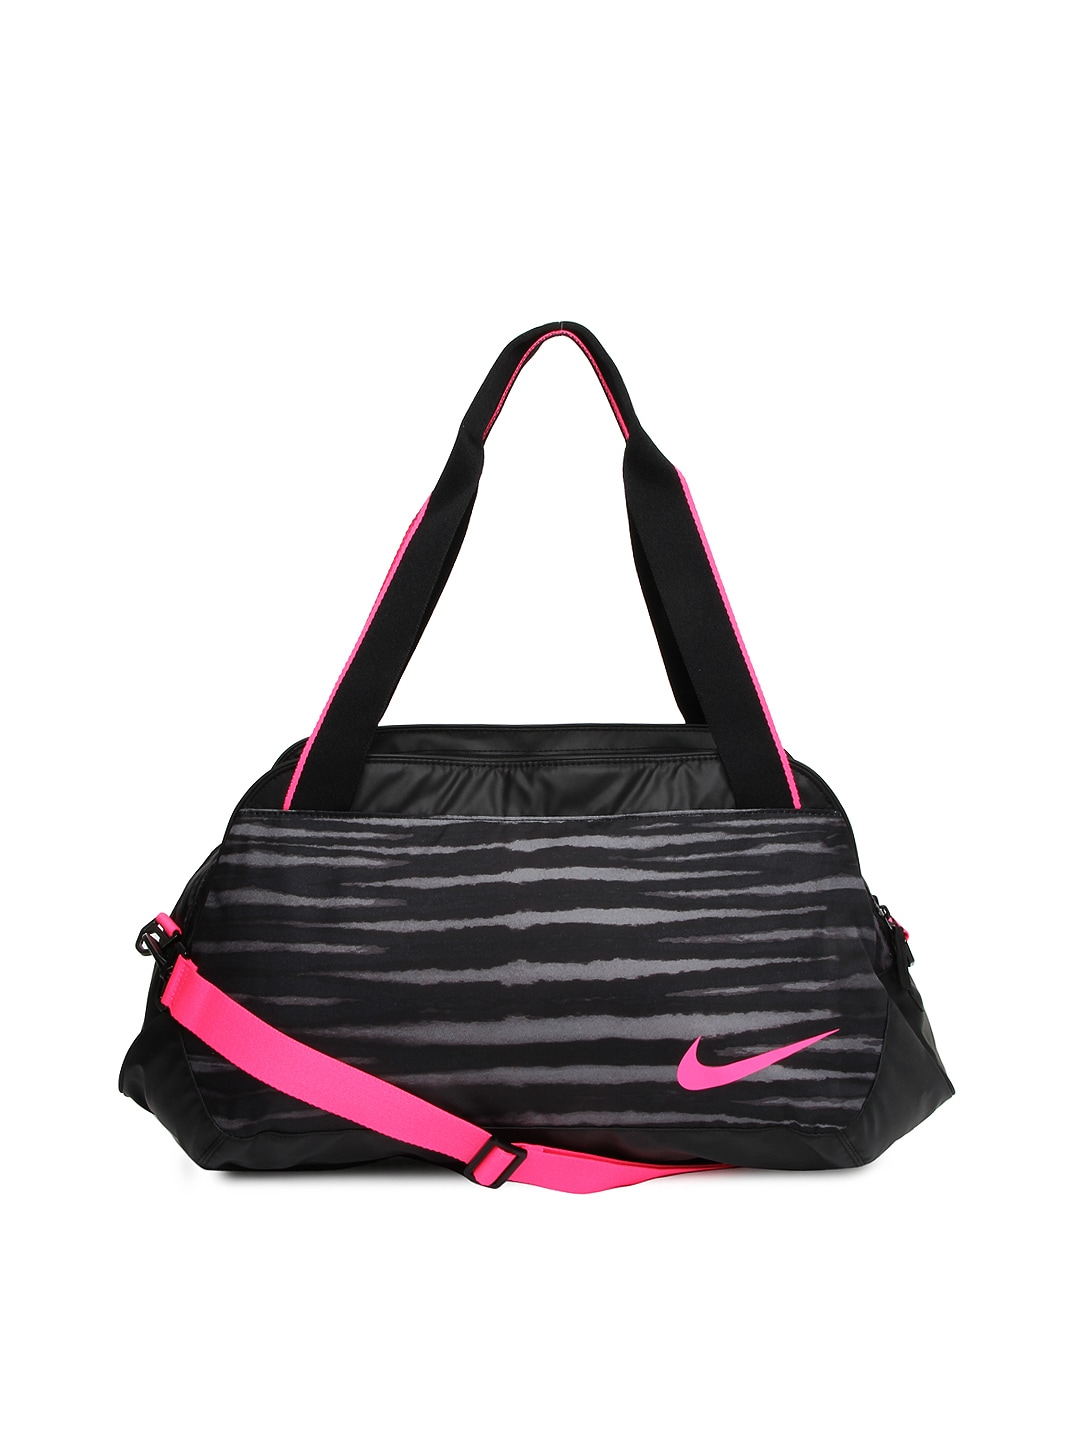 576e9b04407a Nike ba4653-066 Women Black Duffle Bag - Best Price in India ...